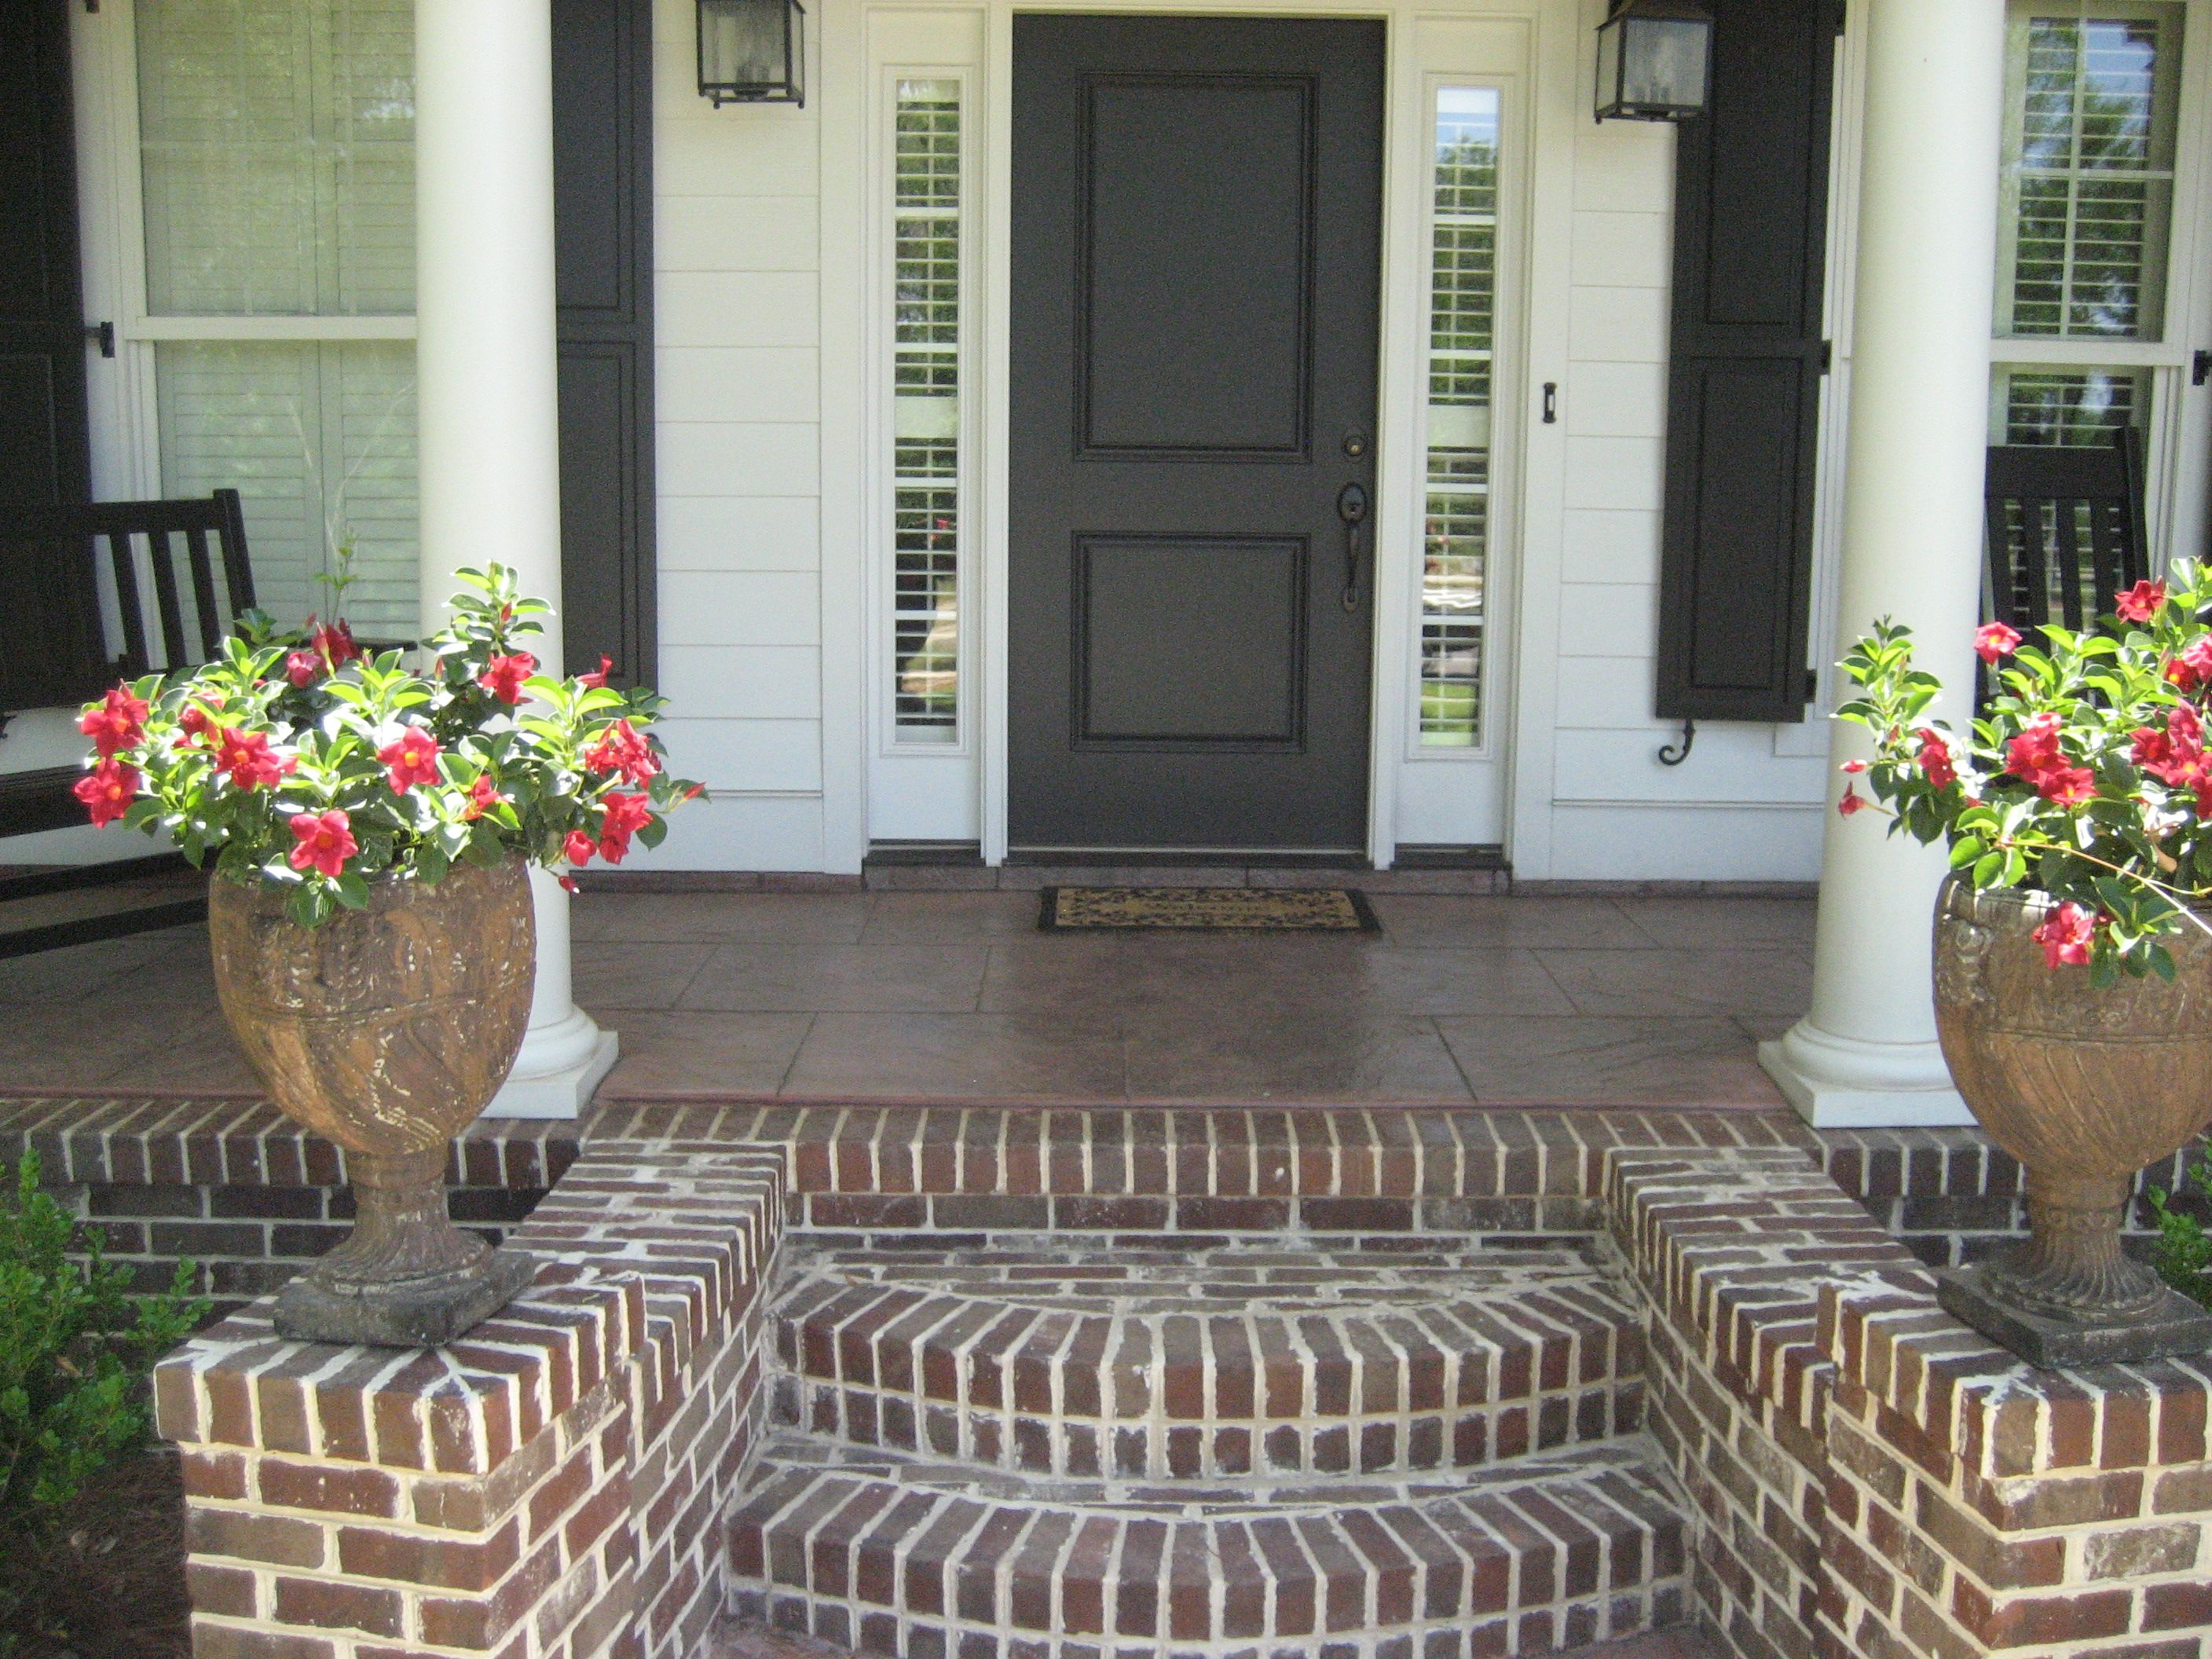 Best Love The Fan Out Styling Of This Front Porch Steps And The Brickwork Front Porch Steps 400 x 300